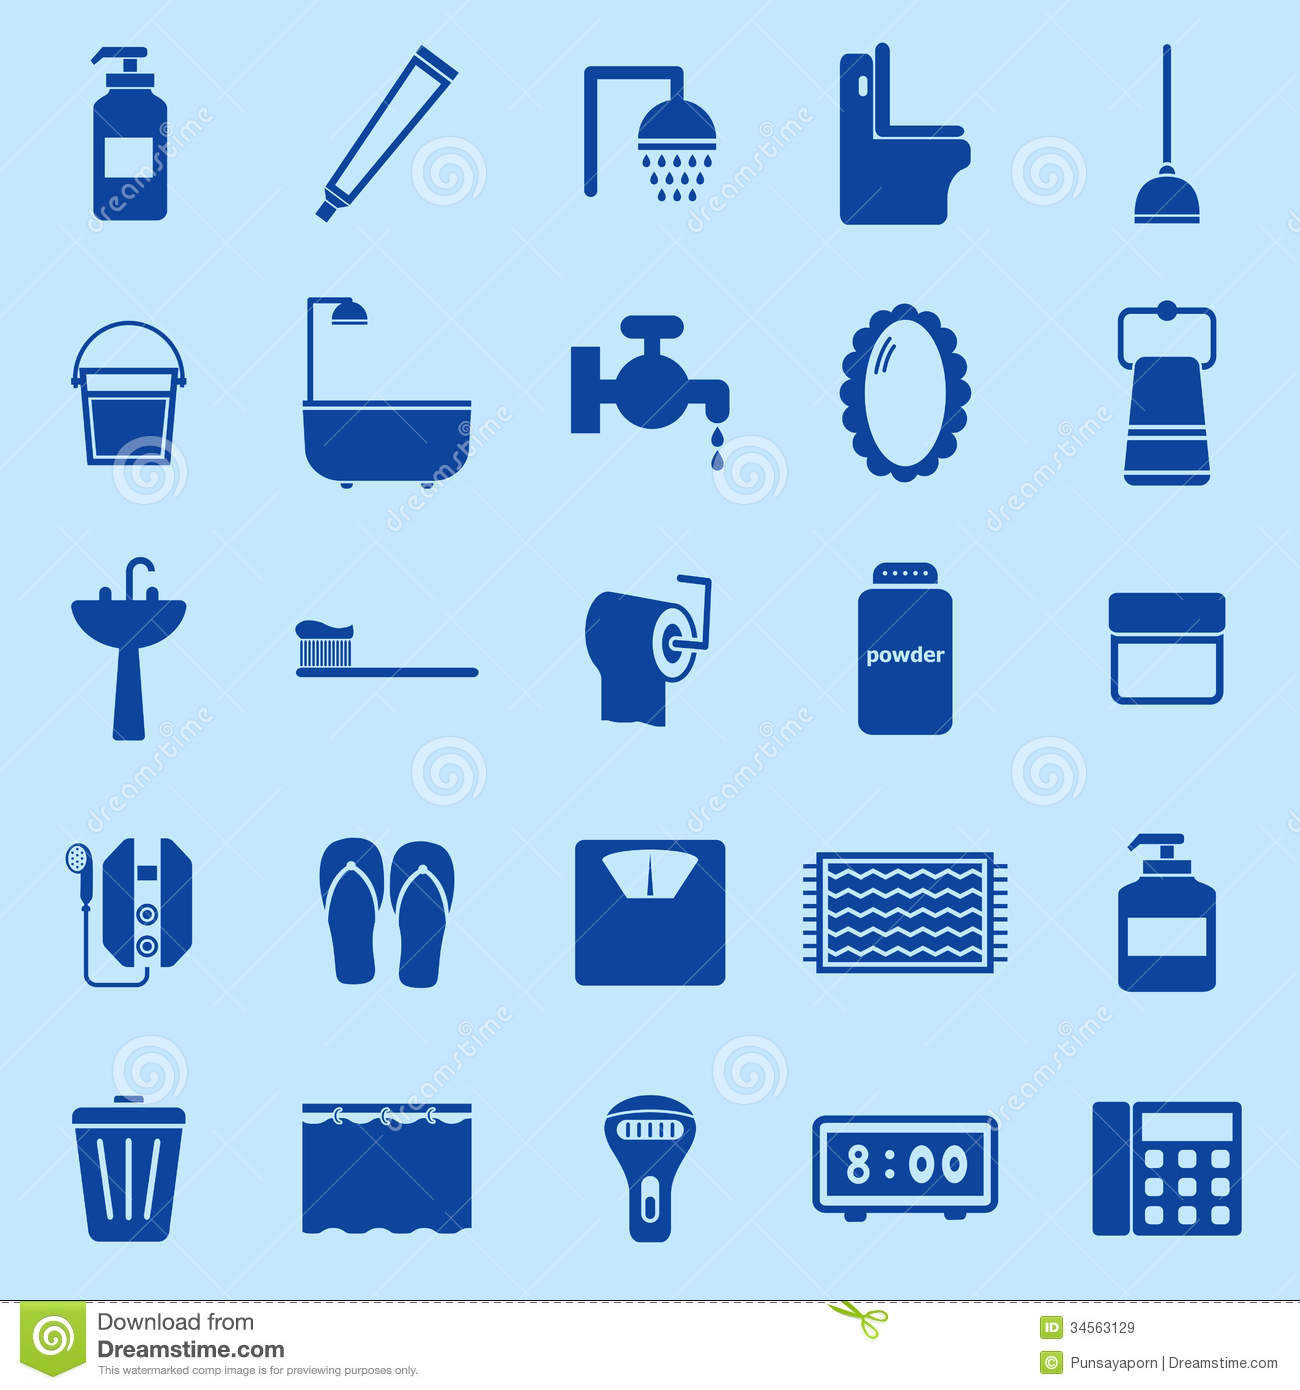 Bathroom Color Icons On Blue Background Royalty Free Stock